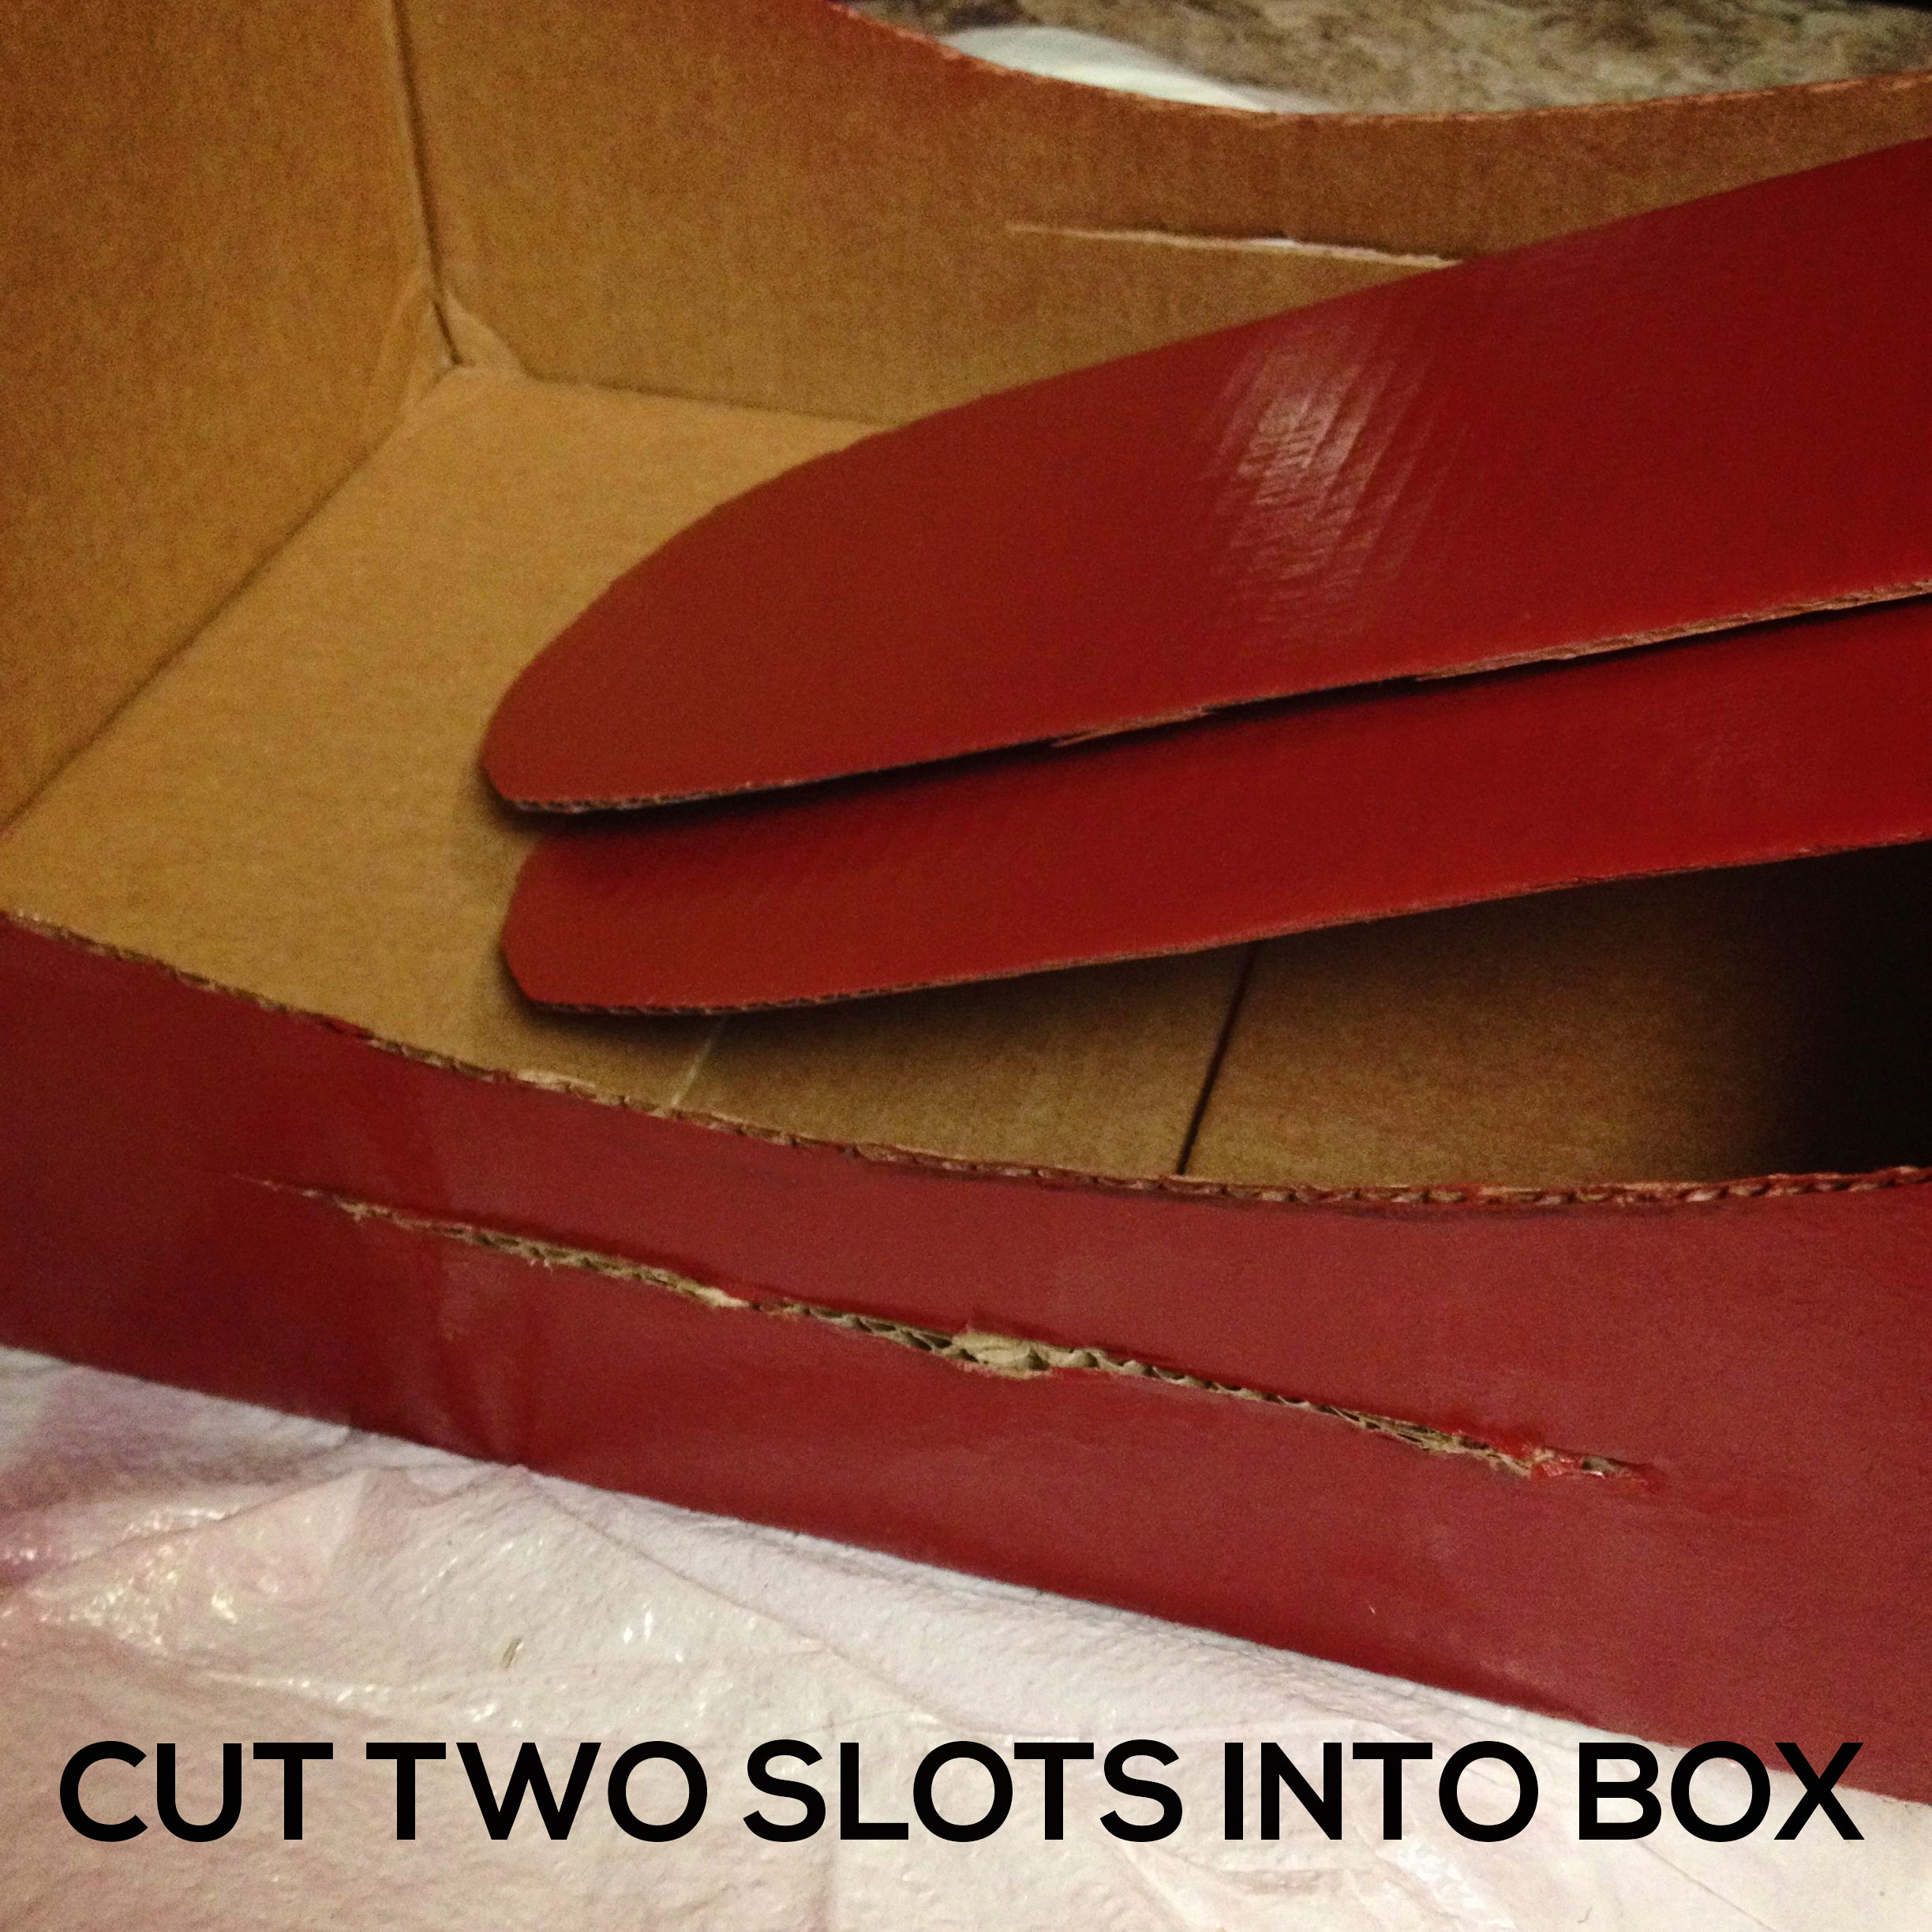 CUT-SLOTS-IN-BOX Make a DIY Box Airplane Prop for Newborn Photography Guest Bloggers Photography Tips Uncategorized